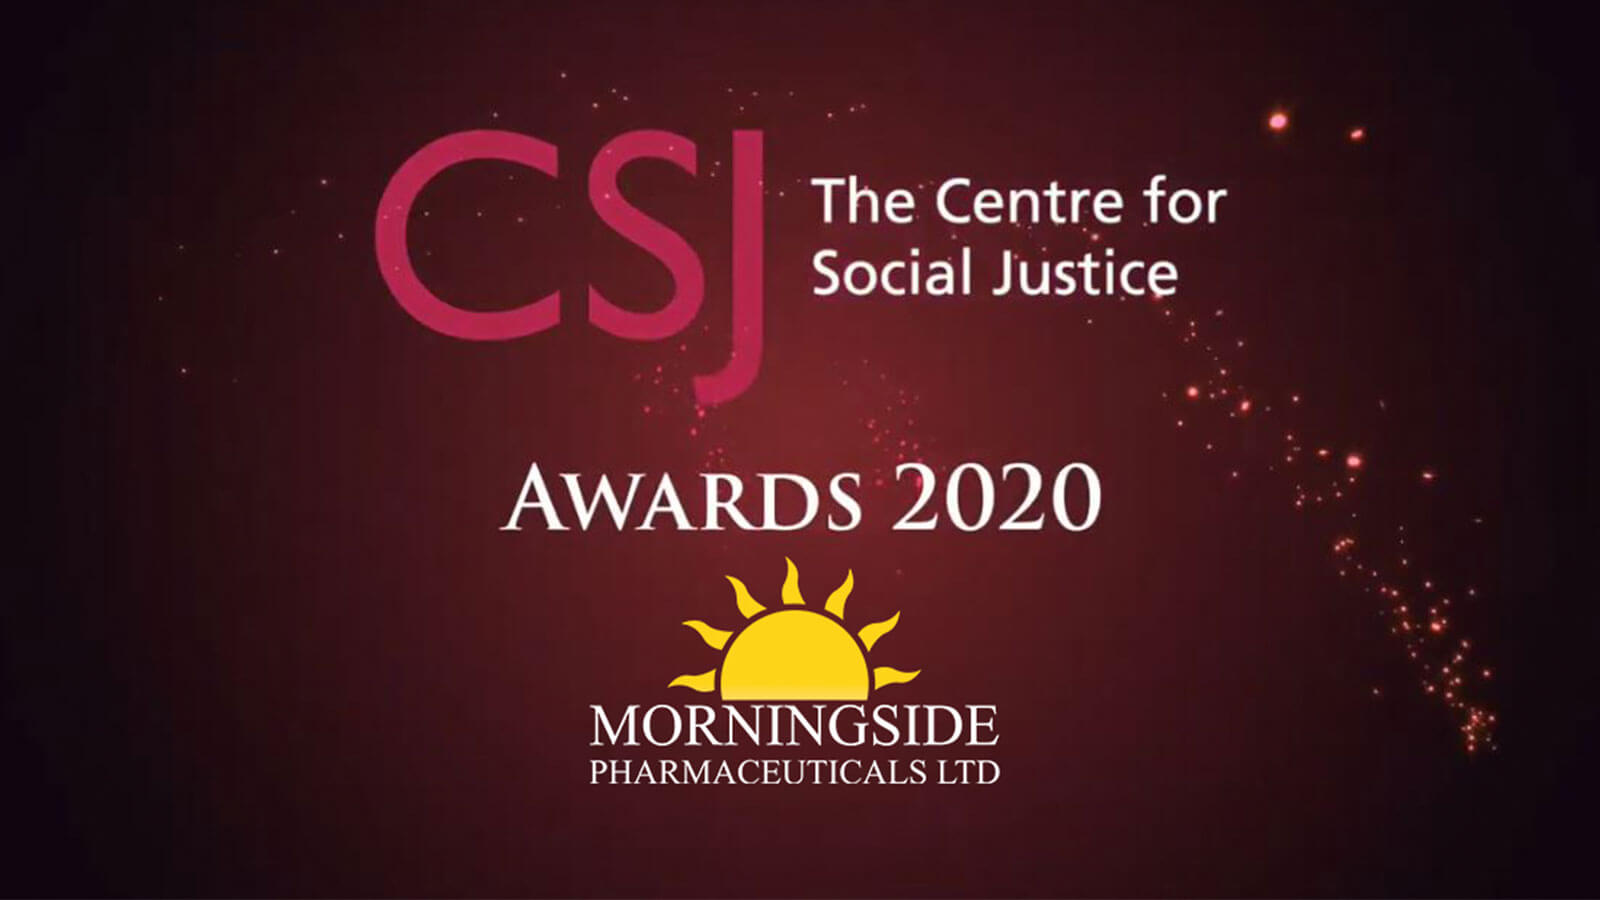 CSJ (Centre for Social Justice) Awards